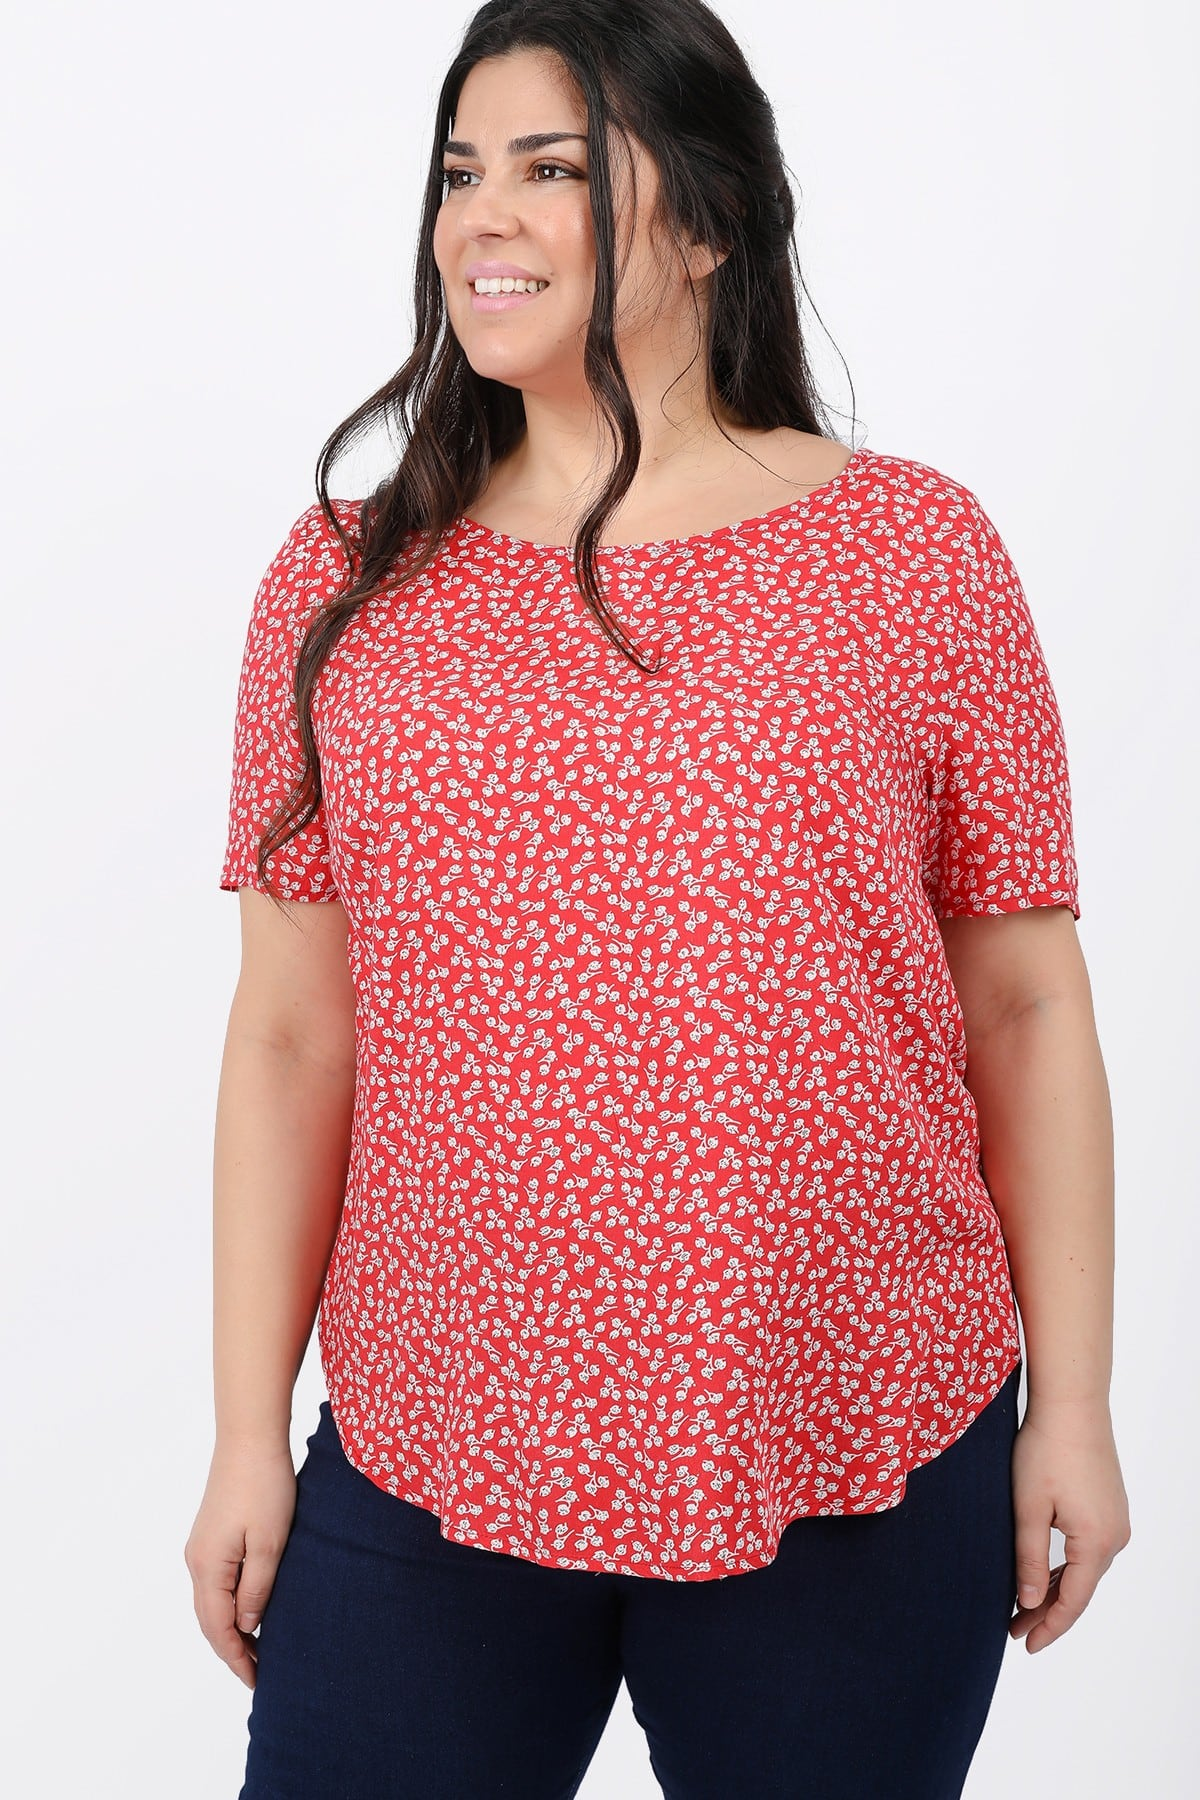 Floral shirtblouse with zipper on the back